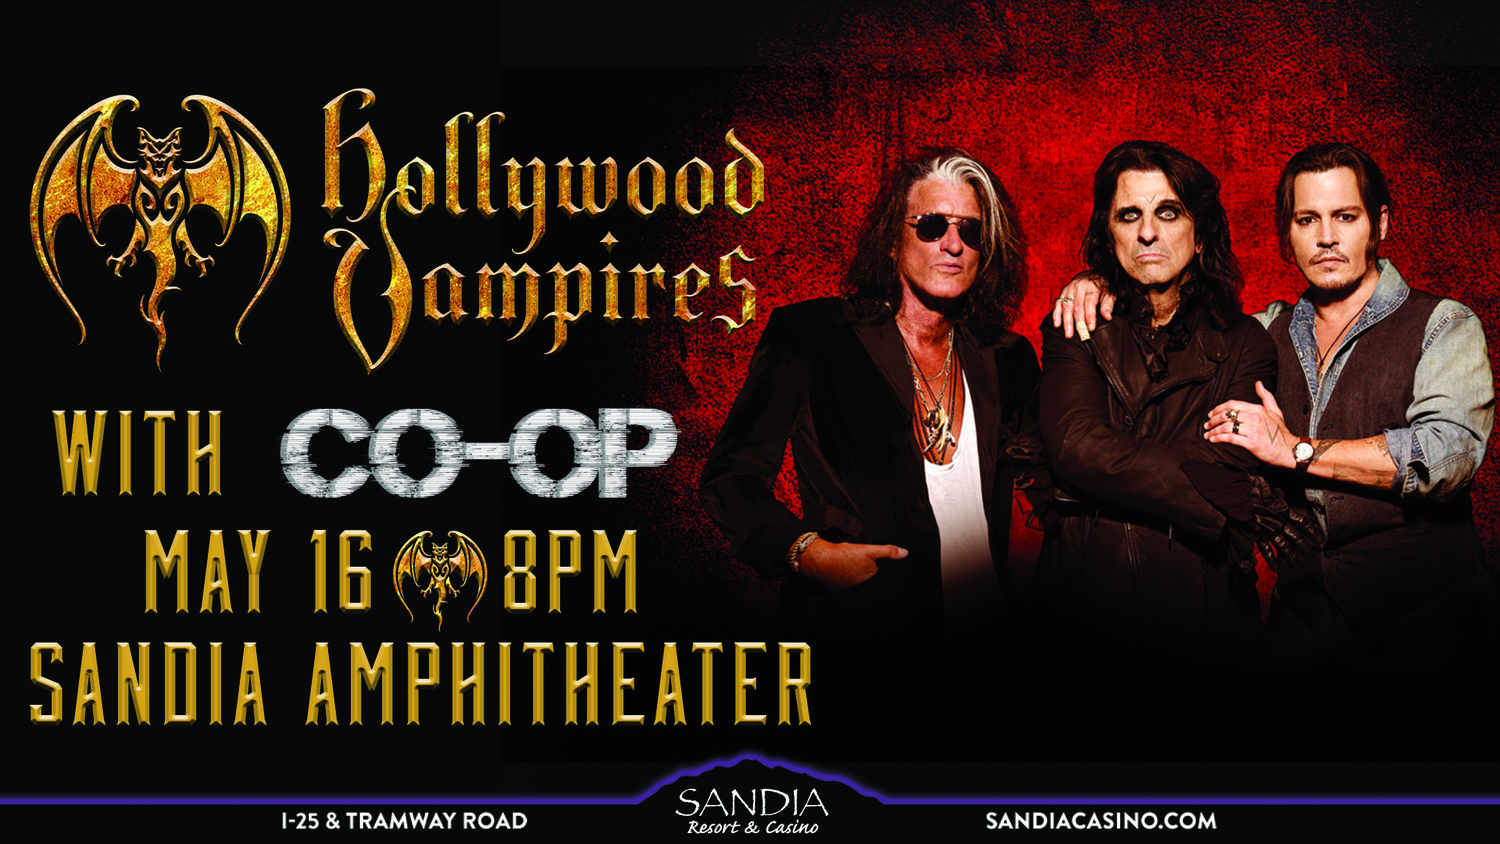 Hollywood Vampires with CO-OP Band Rock Metal Concert Live ALBUQUERQUE